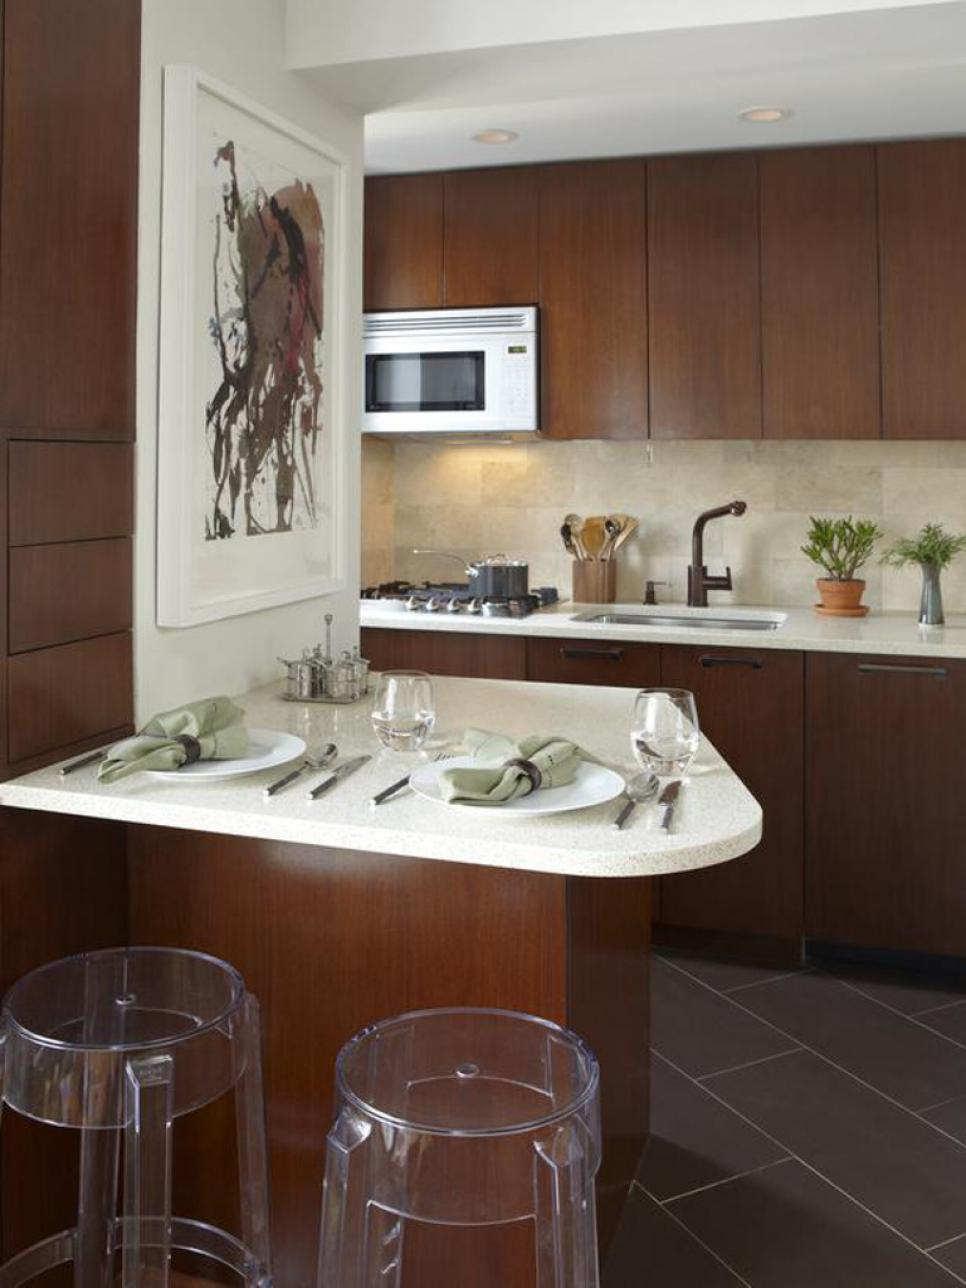 Cool From Outdated to Sophisticated kitchen ideas for small kitchens